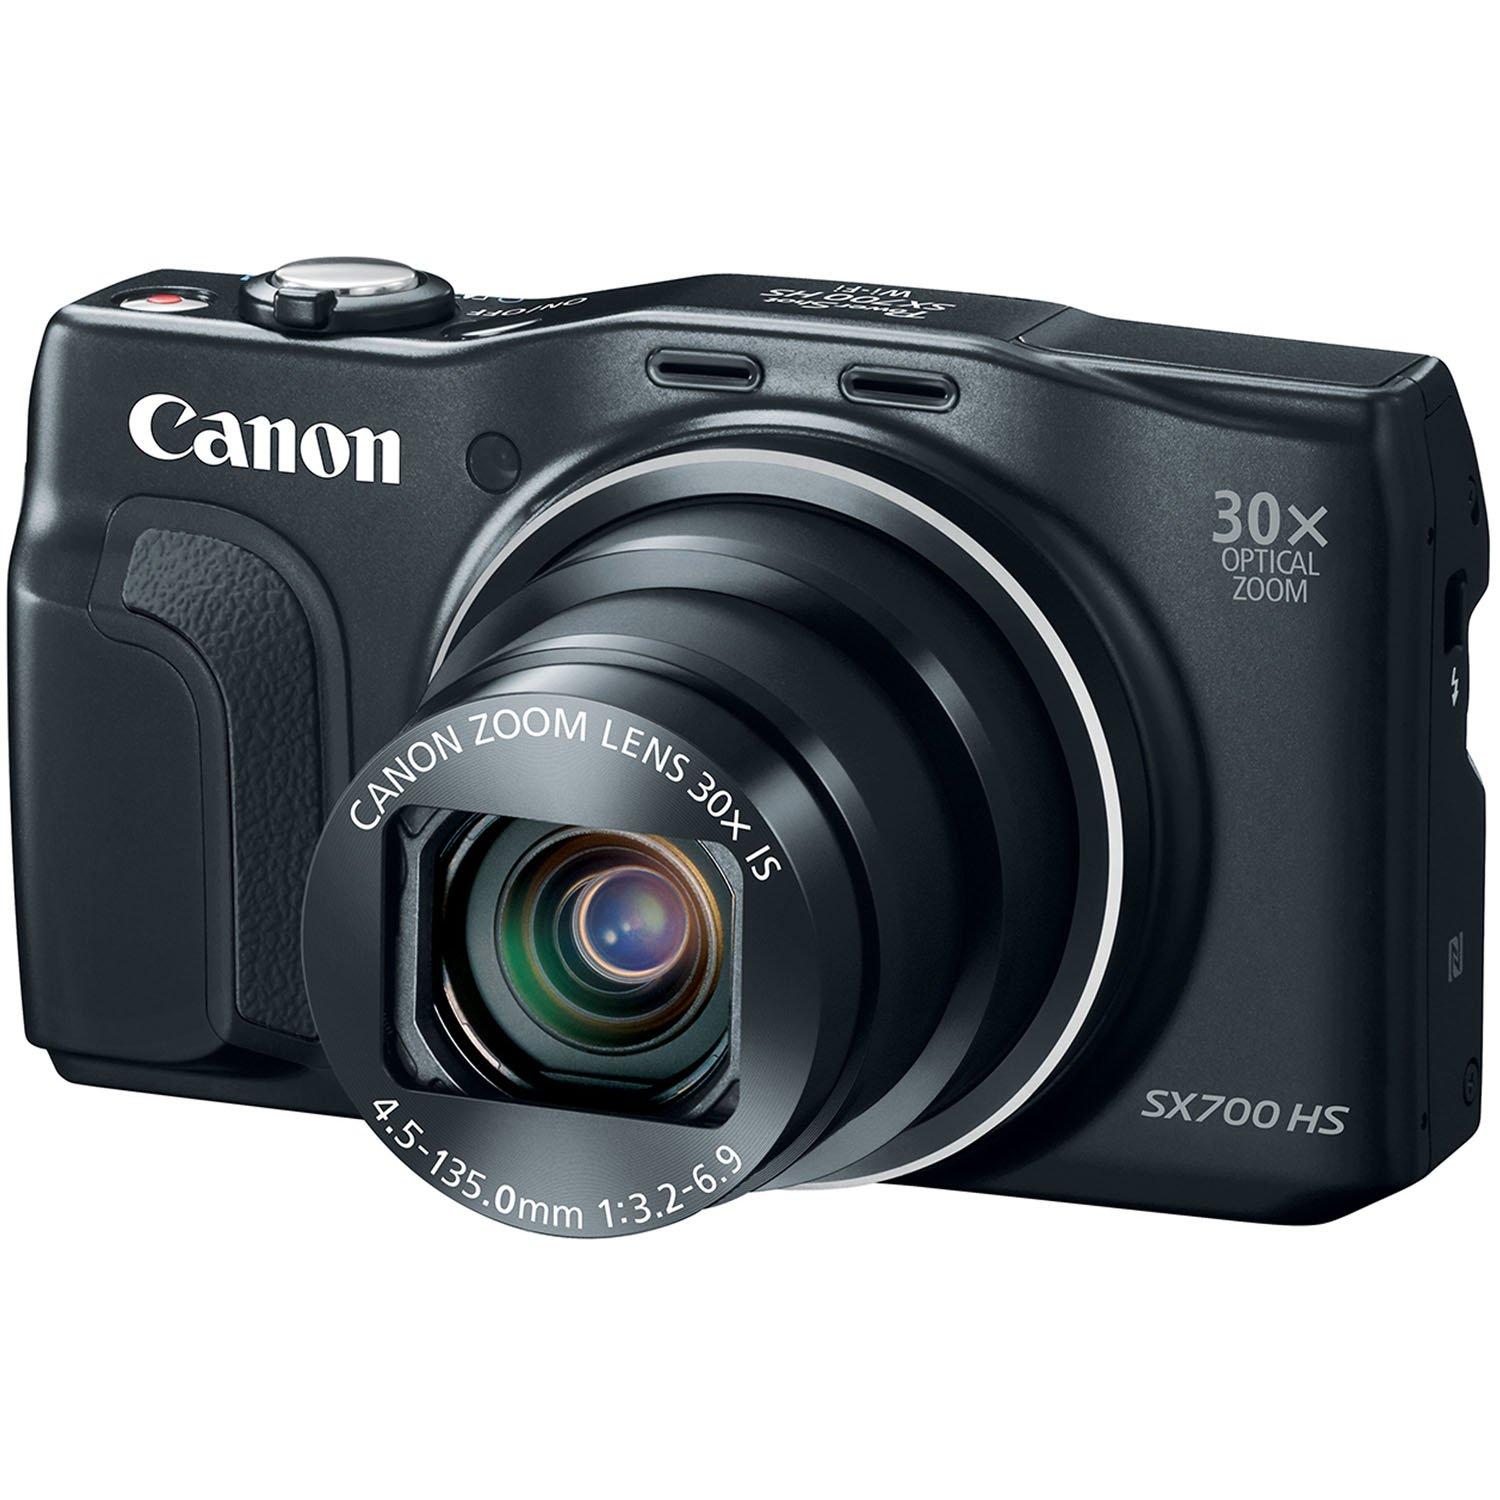 Canon PowerShot SX700 HS Digital Camera - Wi-Fi Enabled (Black) by Canon (Image #4)